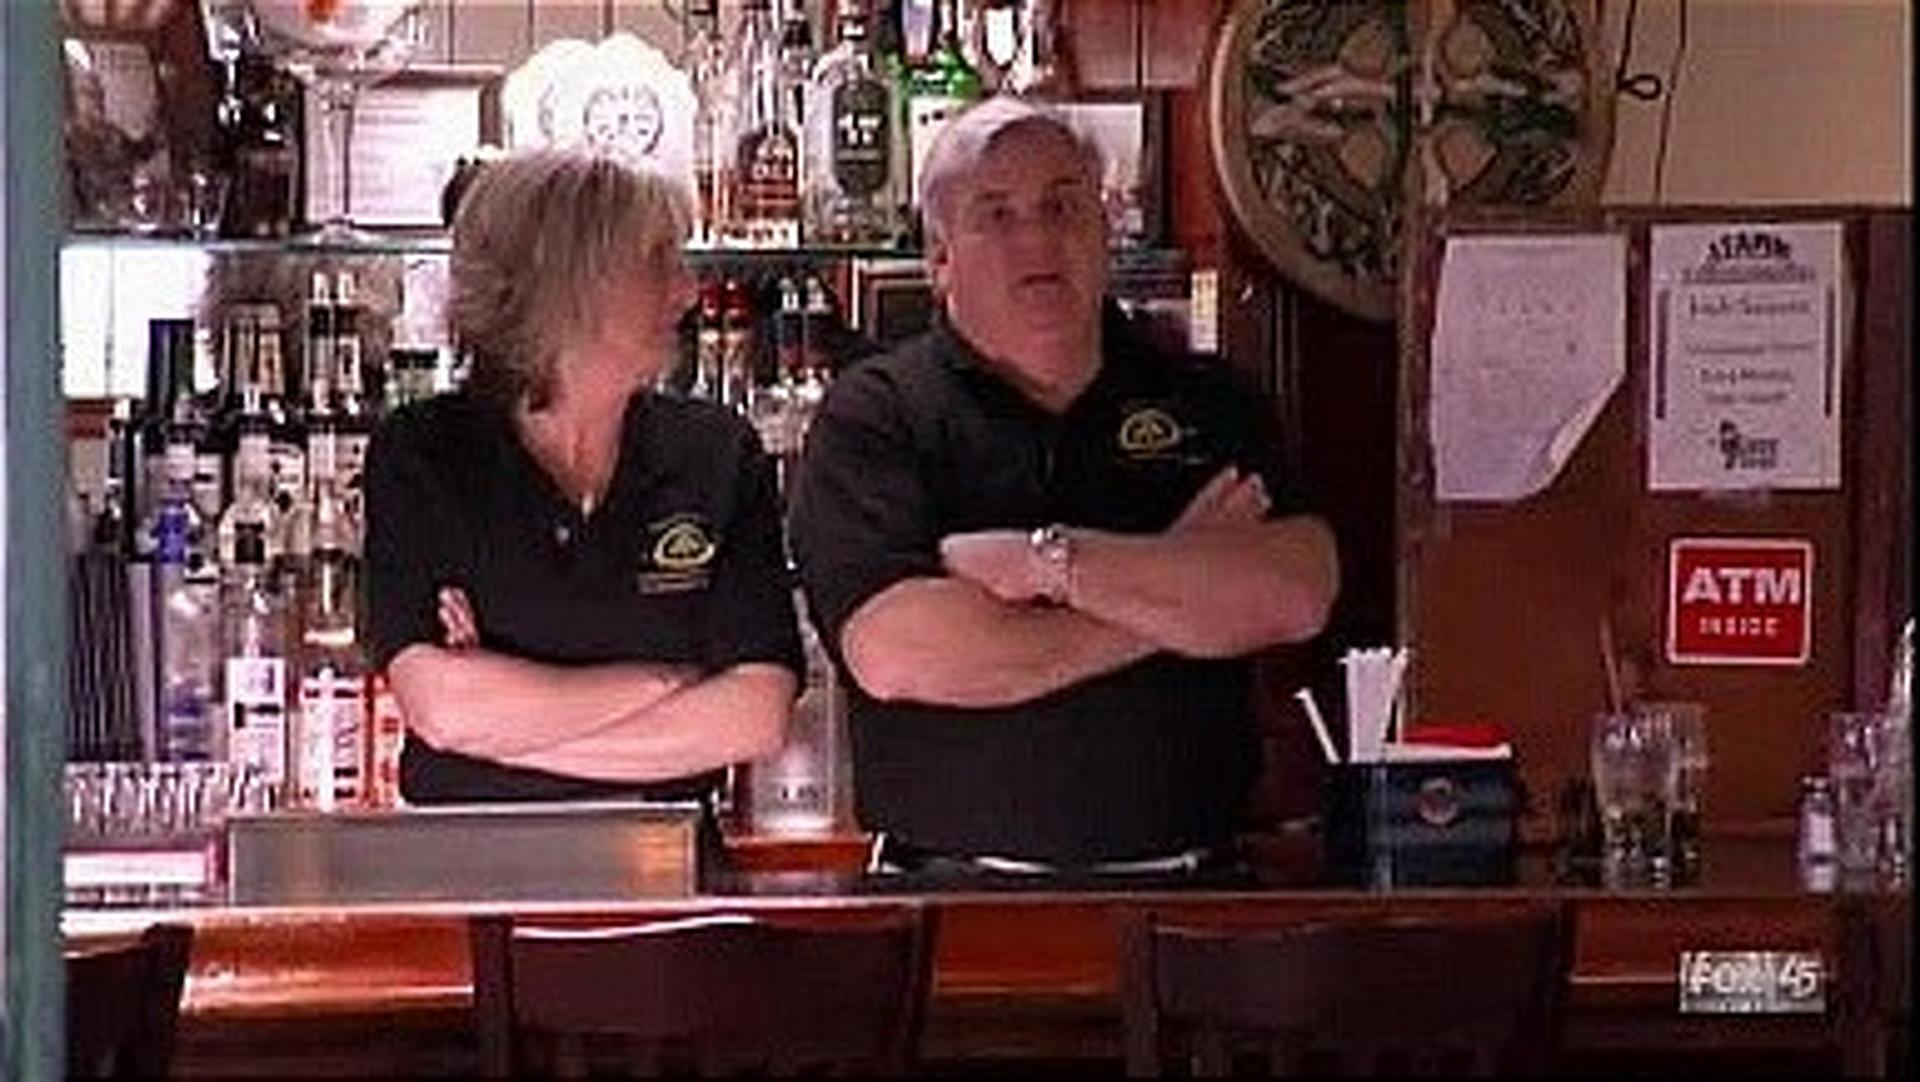 Kitchen nightmares season finn mccool 39 s summary kitchen for Kitchen nightmares season 6 episode 12